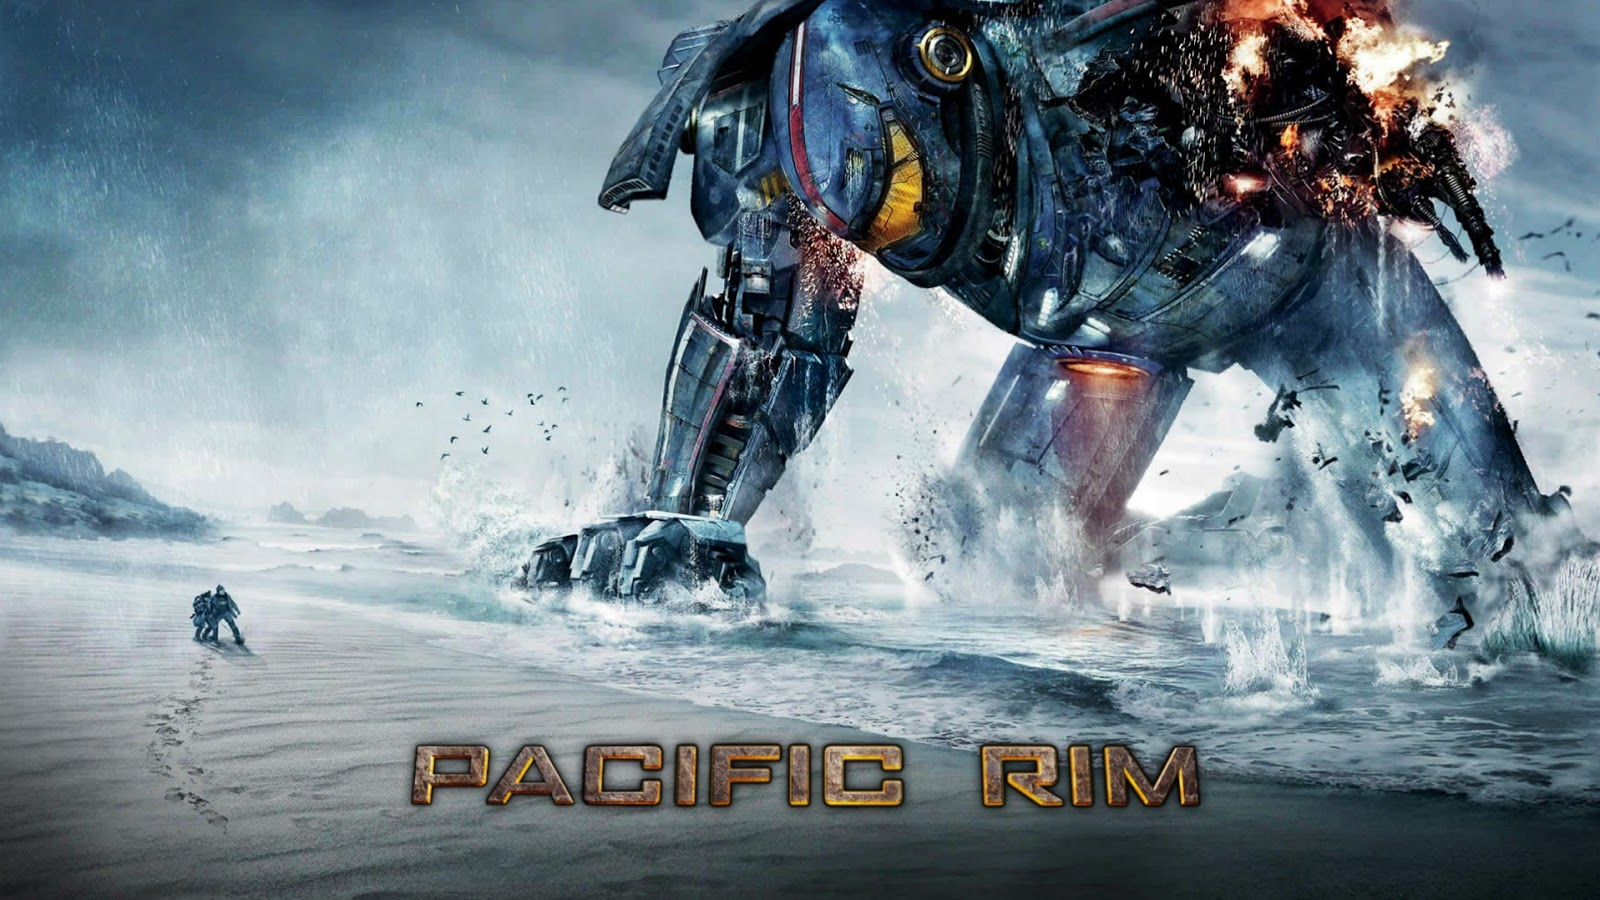 Pacific Rim 2013 3D Movie HD Wallpapers and Posters ... Pacific Rim 2013